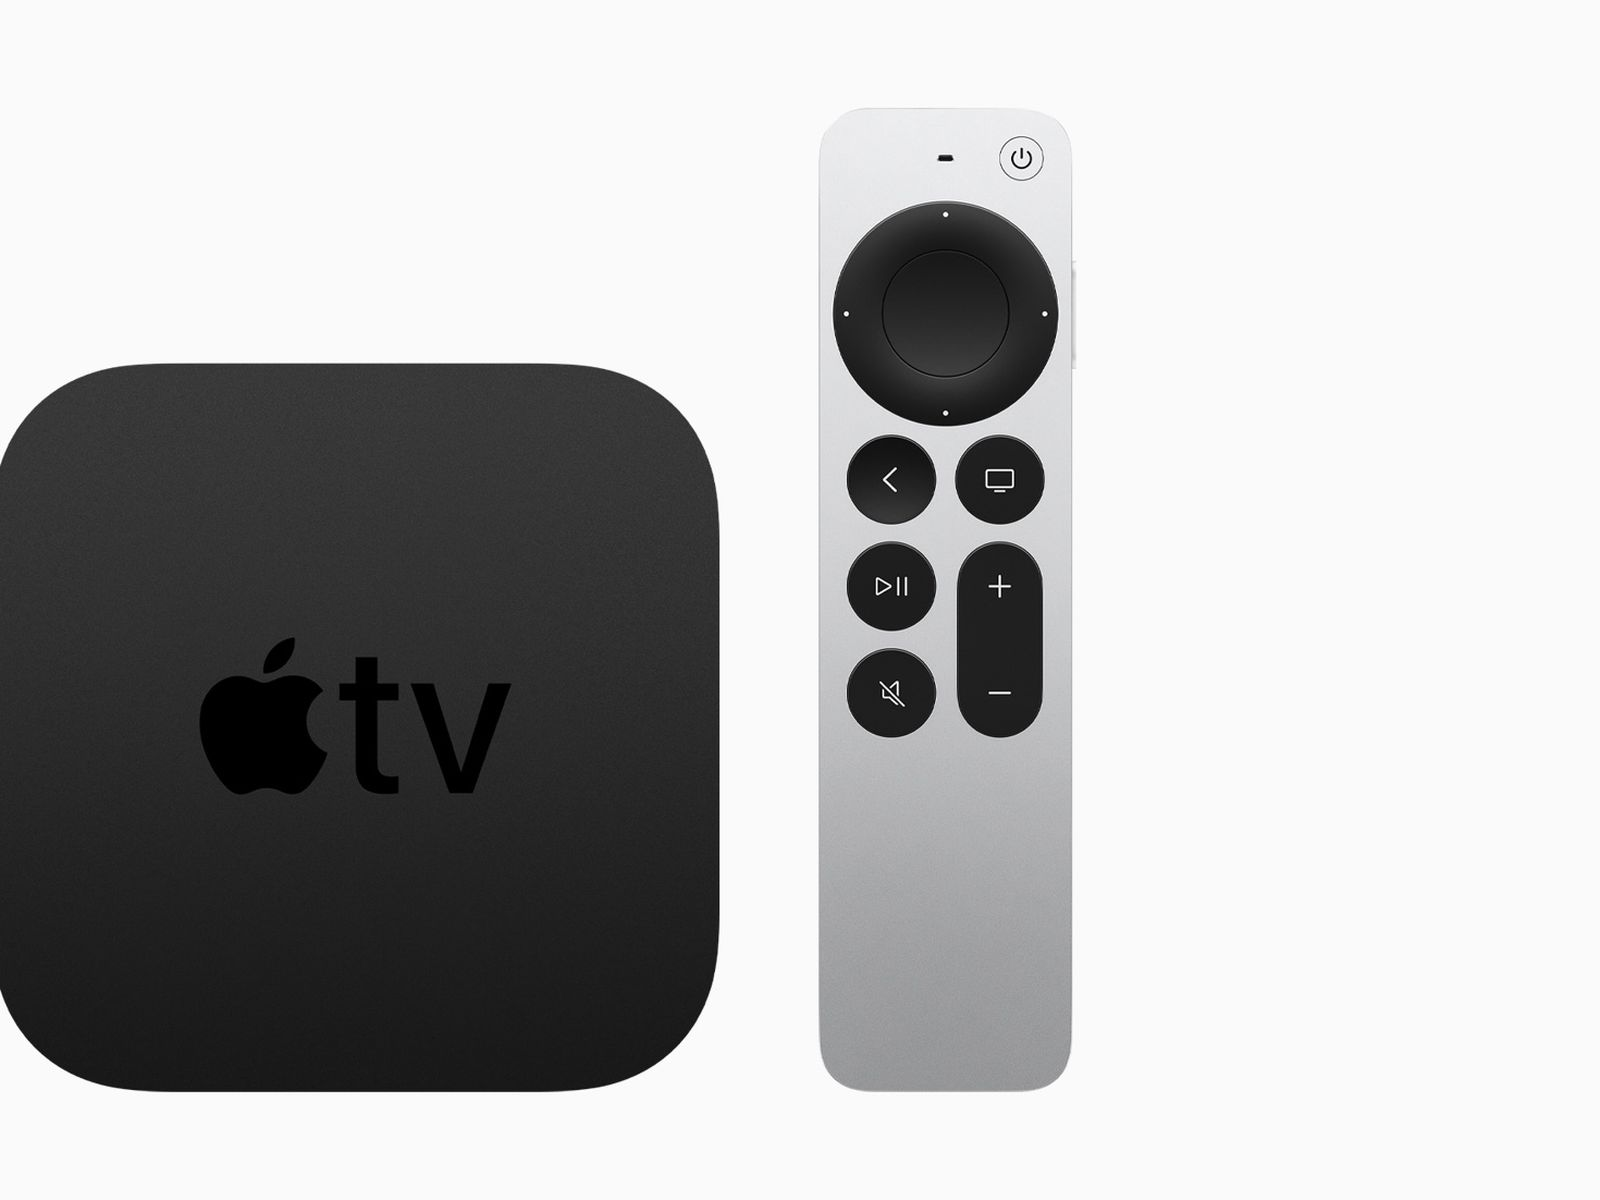 New Apple TV 4K Supports WiFi 6, Thread and HDMI 2.1 - MacRumors